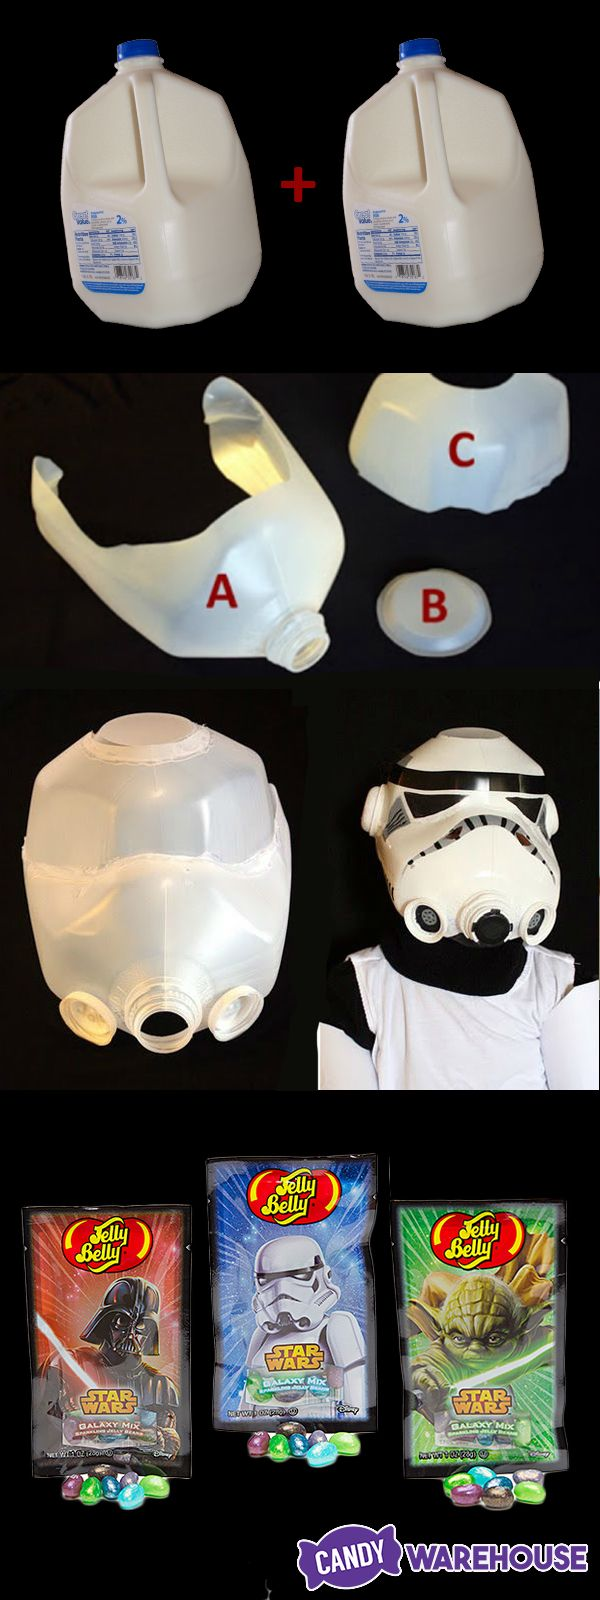 lightweight coats for women Adult DIY Halloween stormtrooper helmet made from two empty milk gallons and some craft paint  Great for an easy homemade Halloween costume  Brought to you by Jelly Belly Star Wars jelly beans  http   www candywarehouse com products jelly belly star wars jelly beans 1 ounce packs 24 piece display